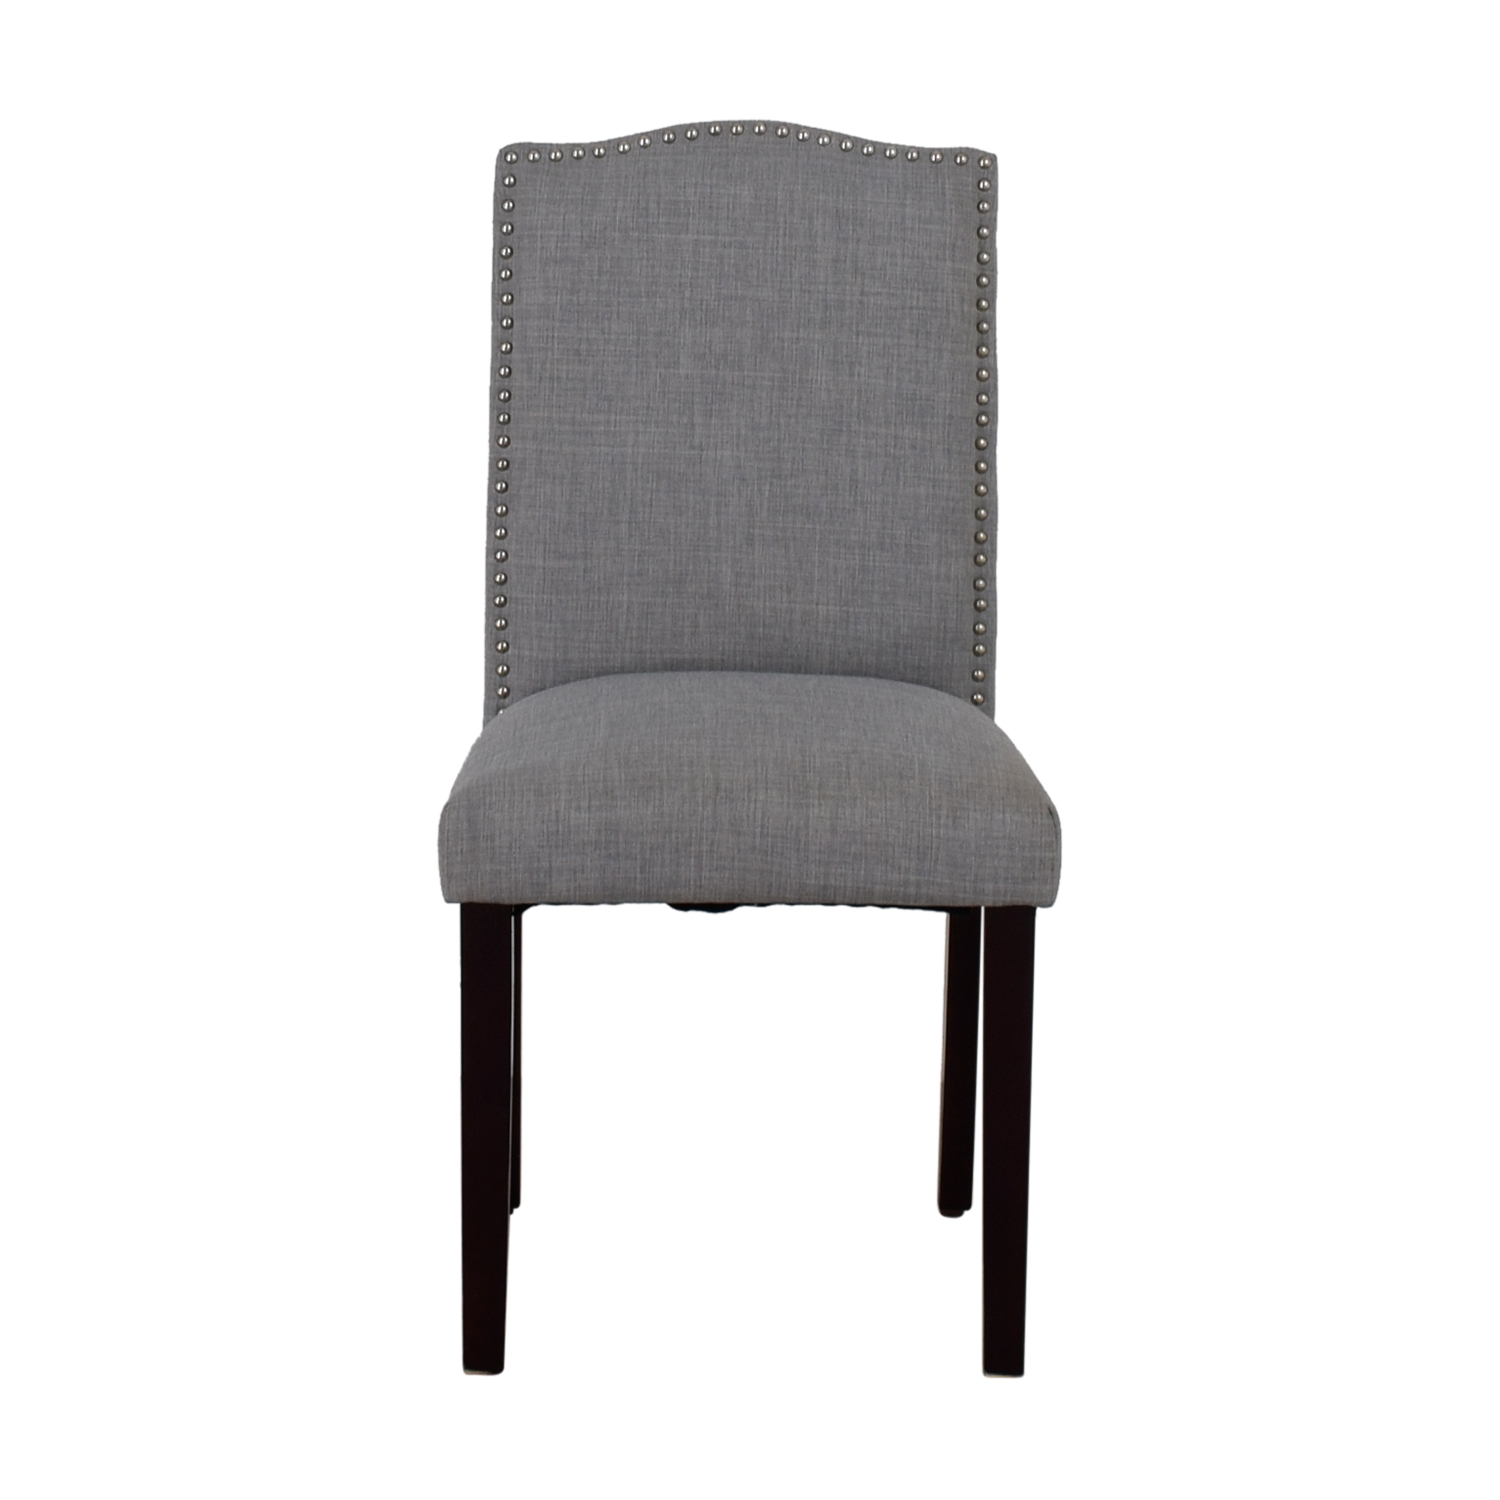 Grey Nailhead Fabric Chair Accent Chairs